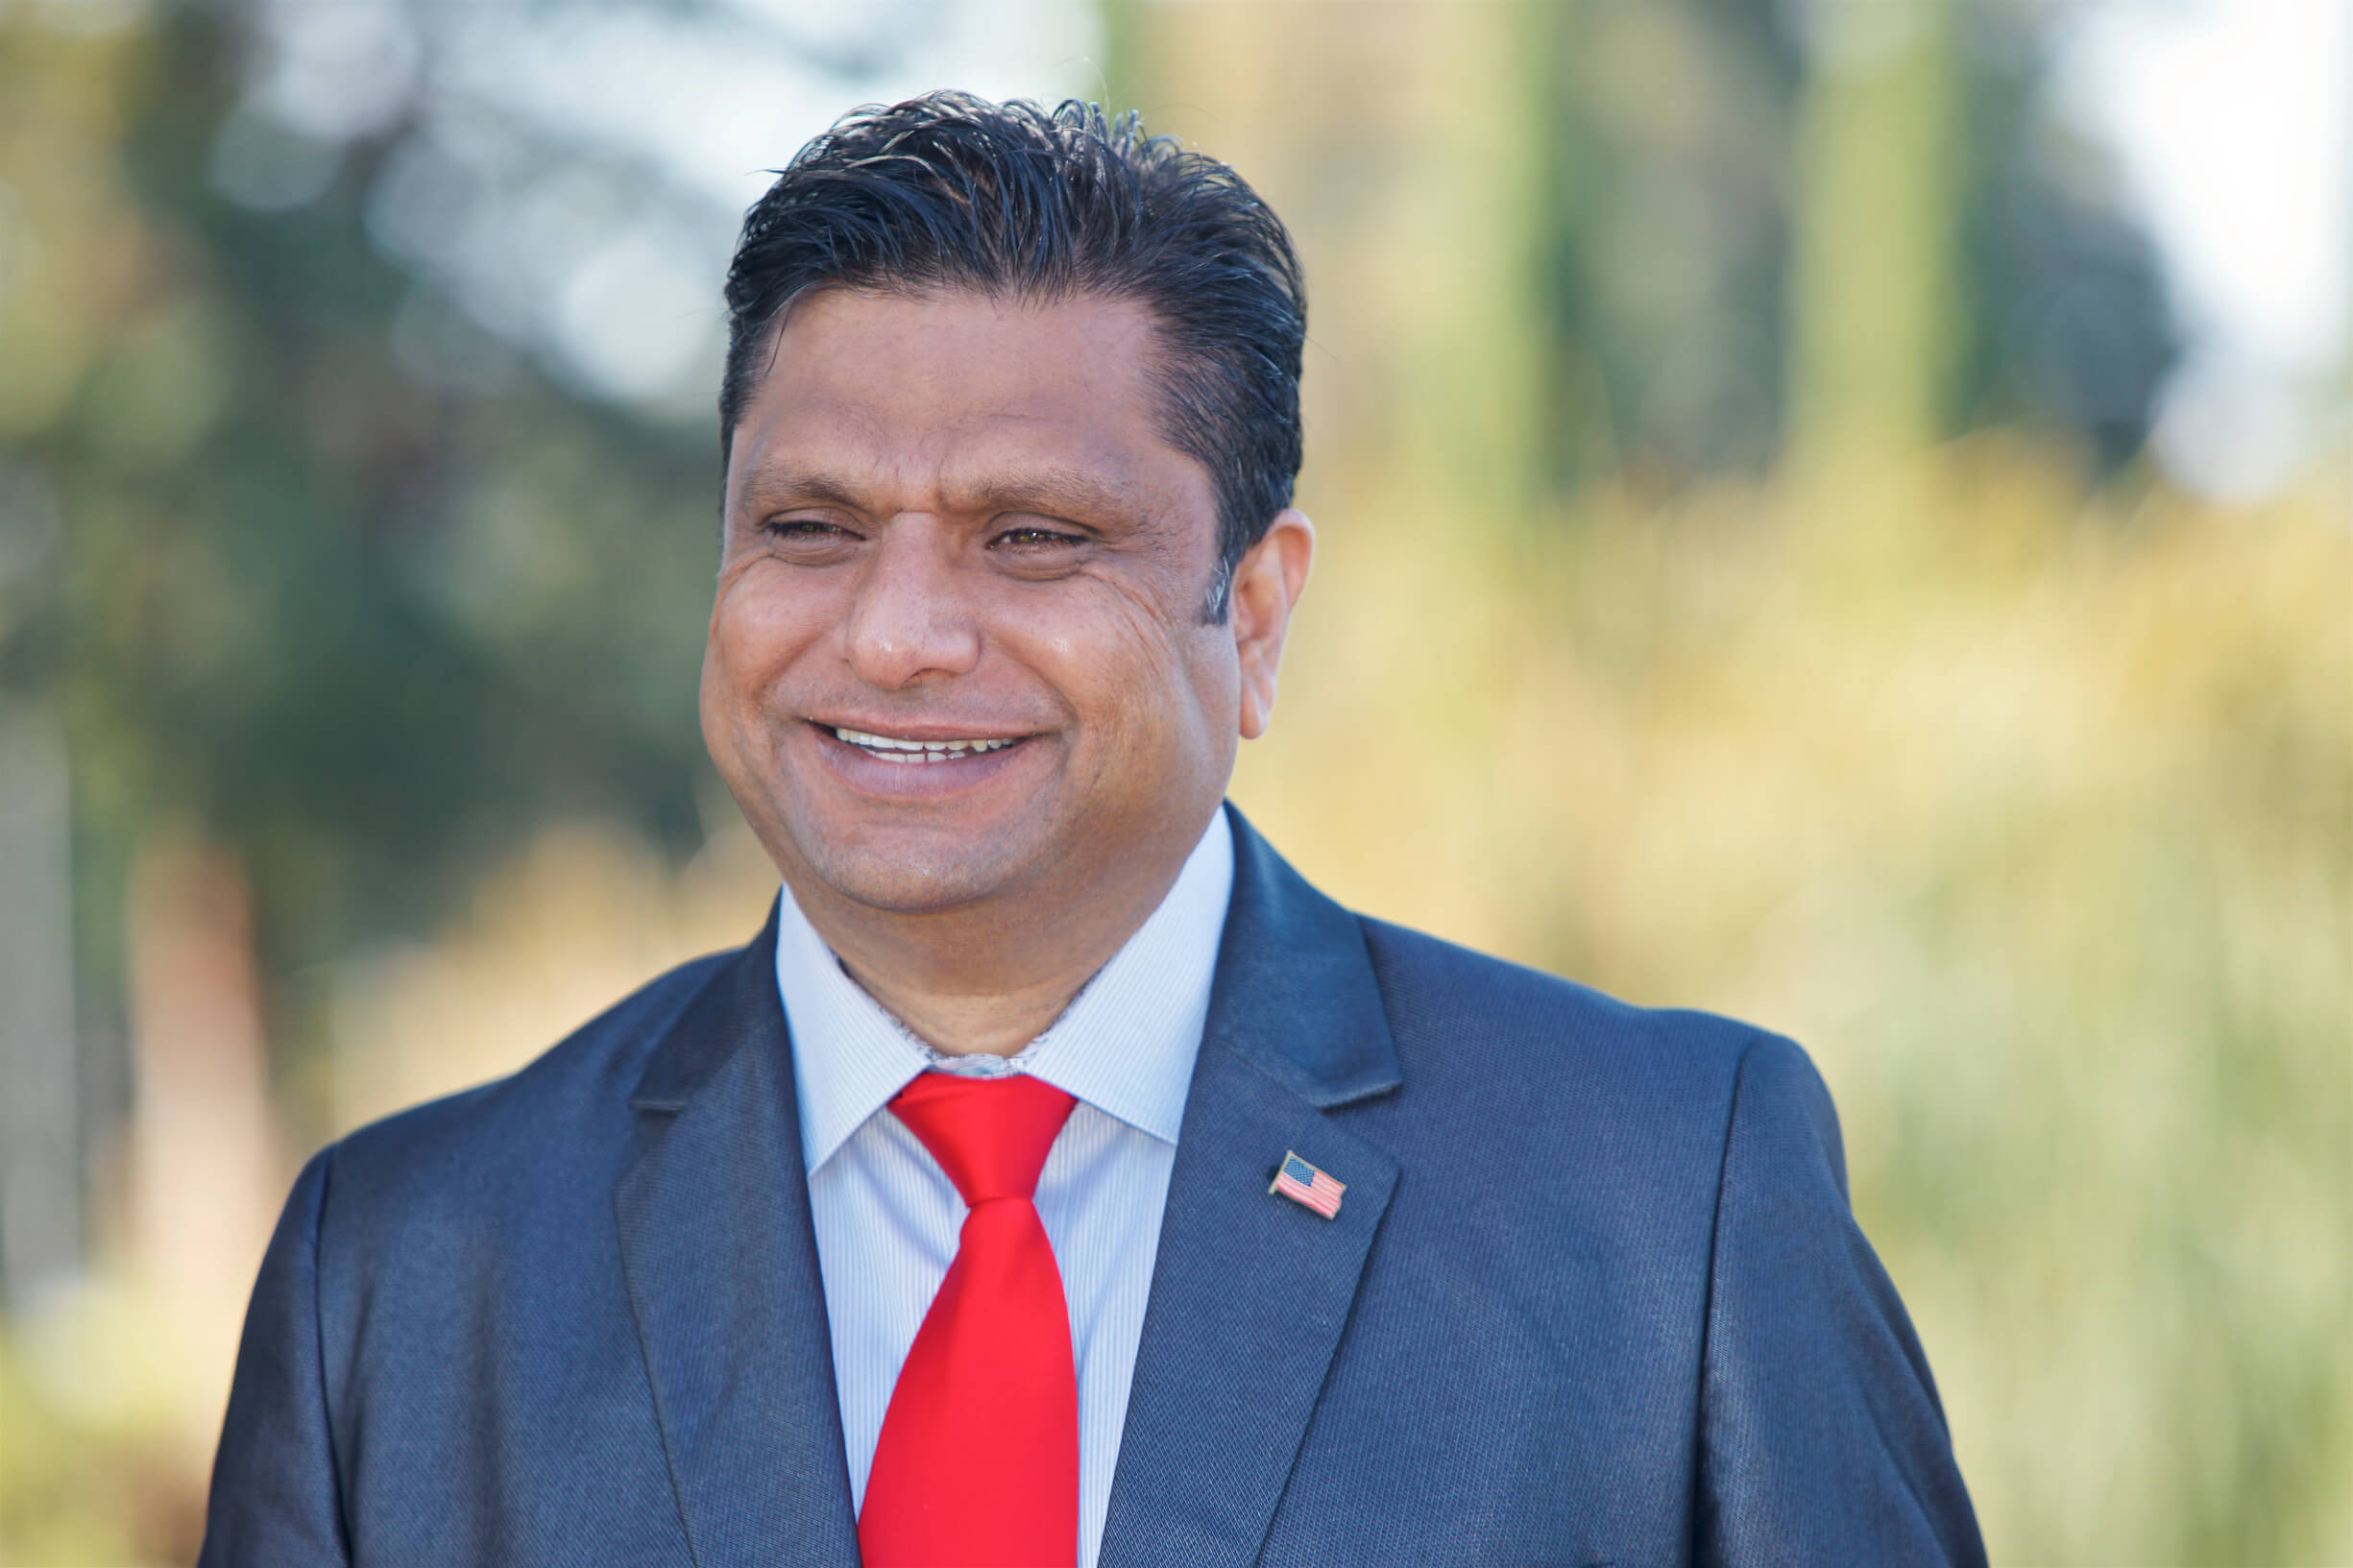 Ritesh Tandon Campaign Announcement